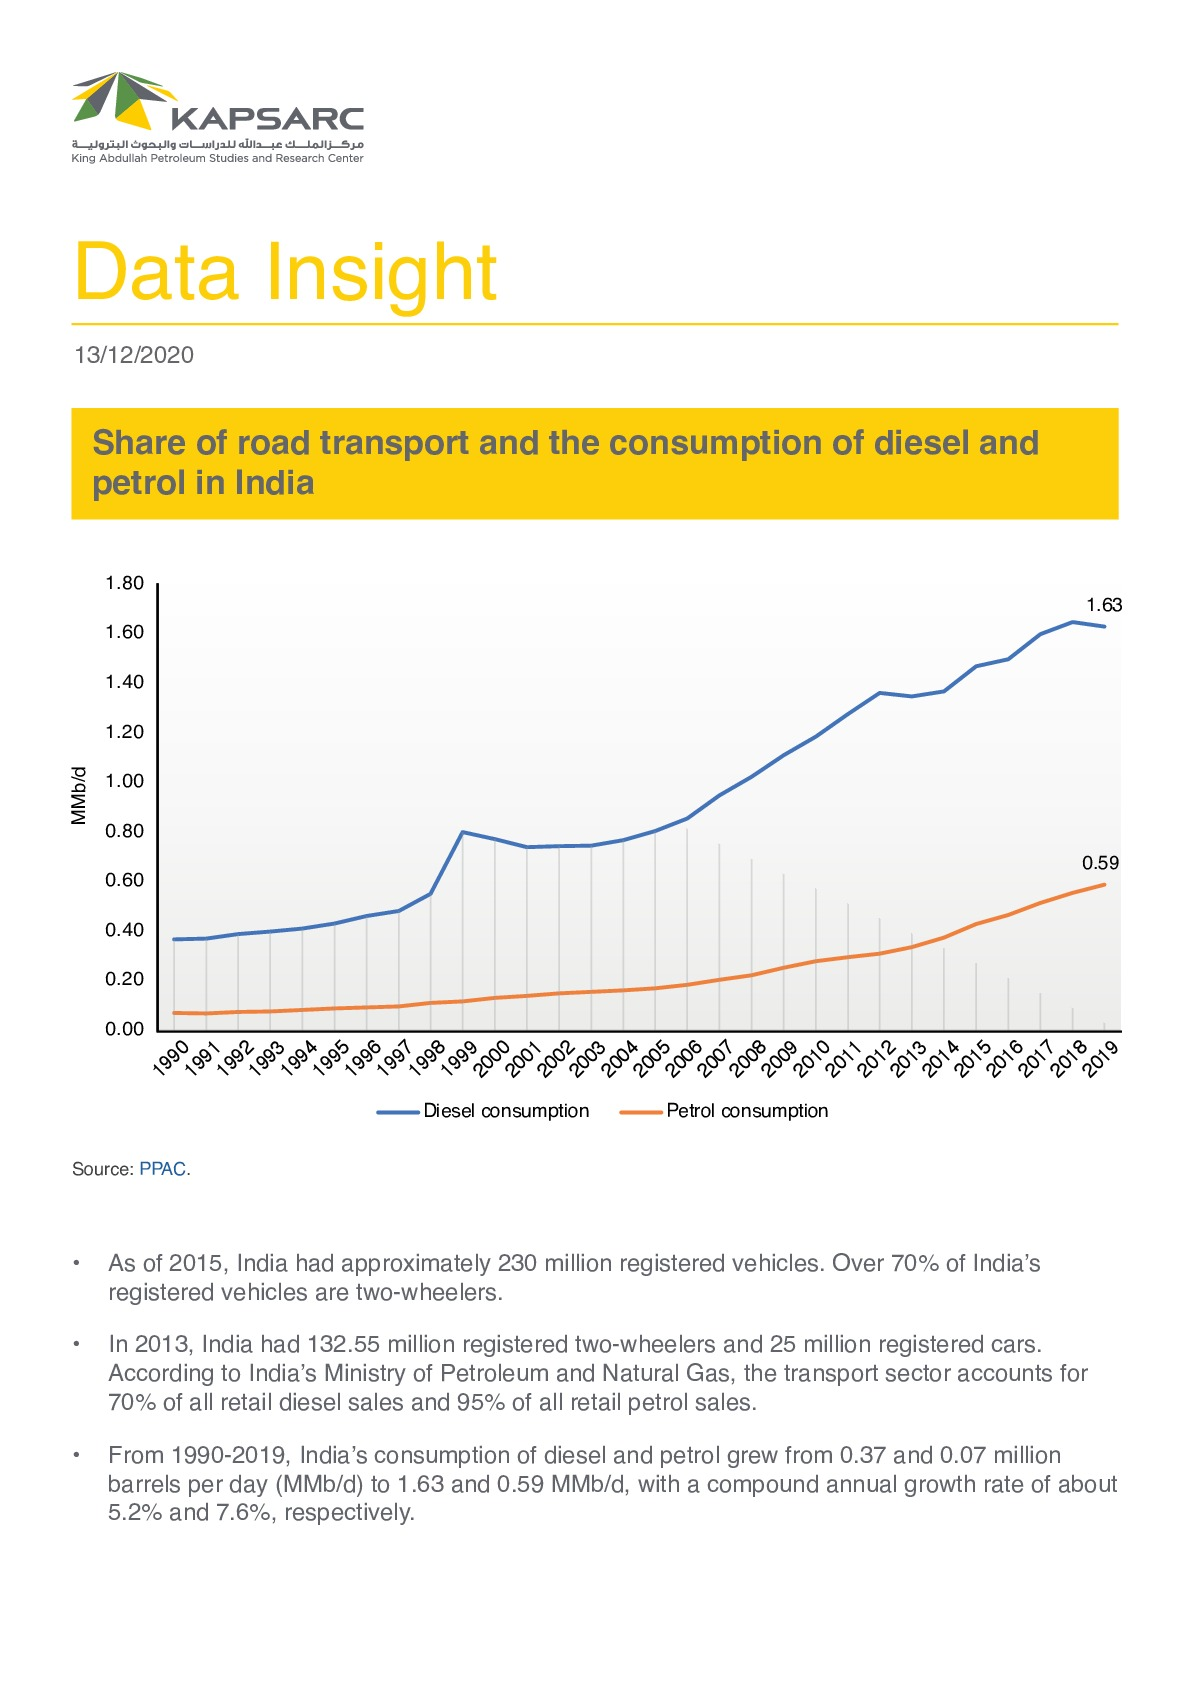 Share of Road Transport and the Consumption of Diesel and Petrol in India